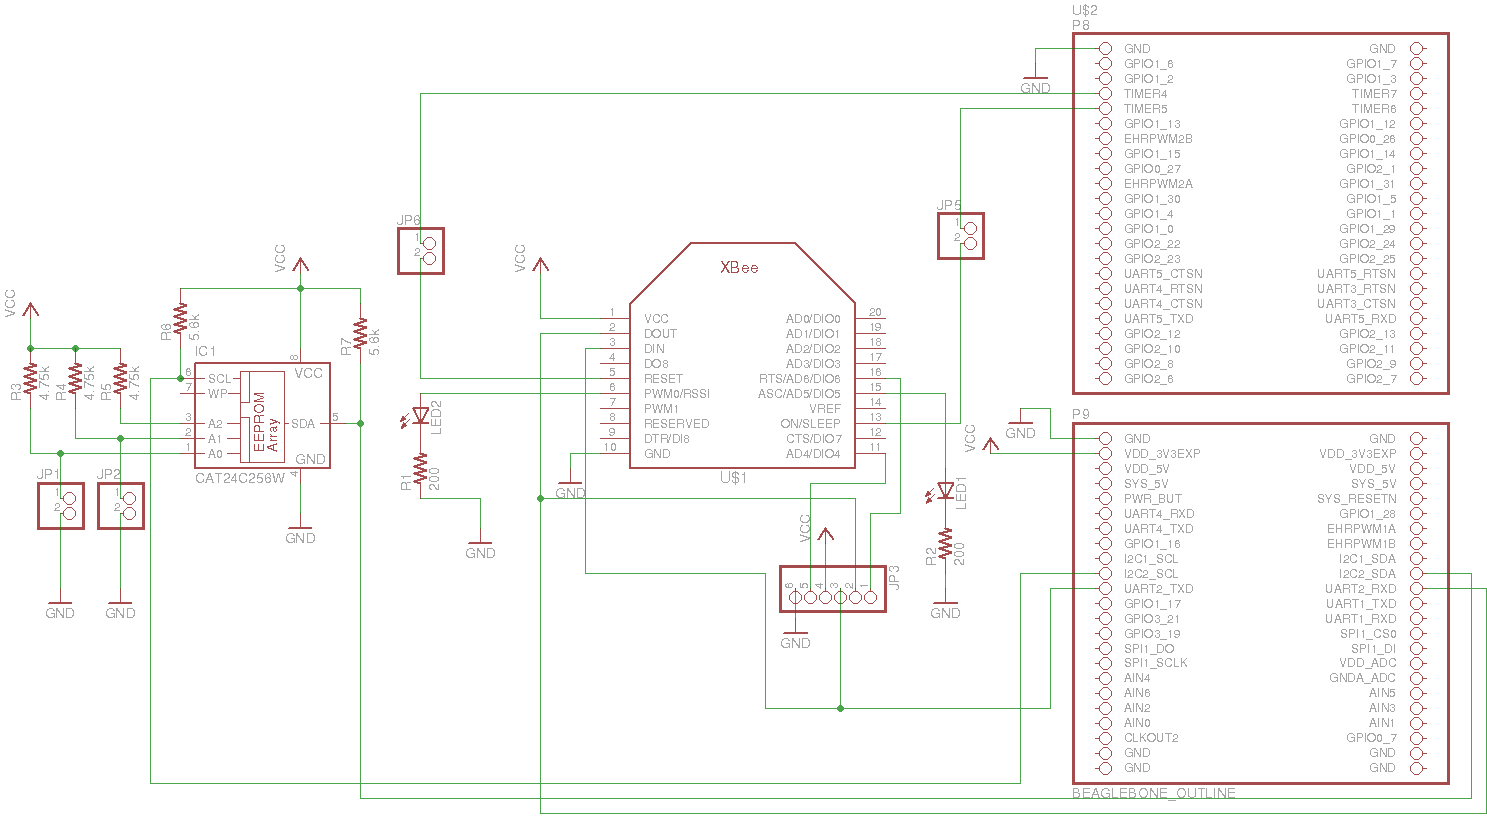 Schematics and board making tips | The World of Infosec According to on geiger counter schematic, bluetooth schematic, electronics schematic, wireless schematic, breadboard schematic, apple schematic, usb schematic, quadcopter schematic, xbee schematic, flux capacitor schematic, msp430 schematic, lcd schematic, gps schematic, solar schematic, arduino schematic,